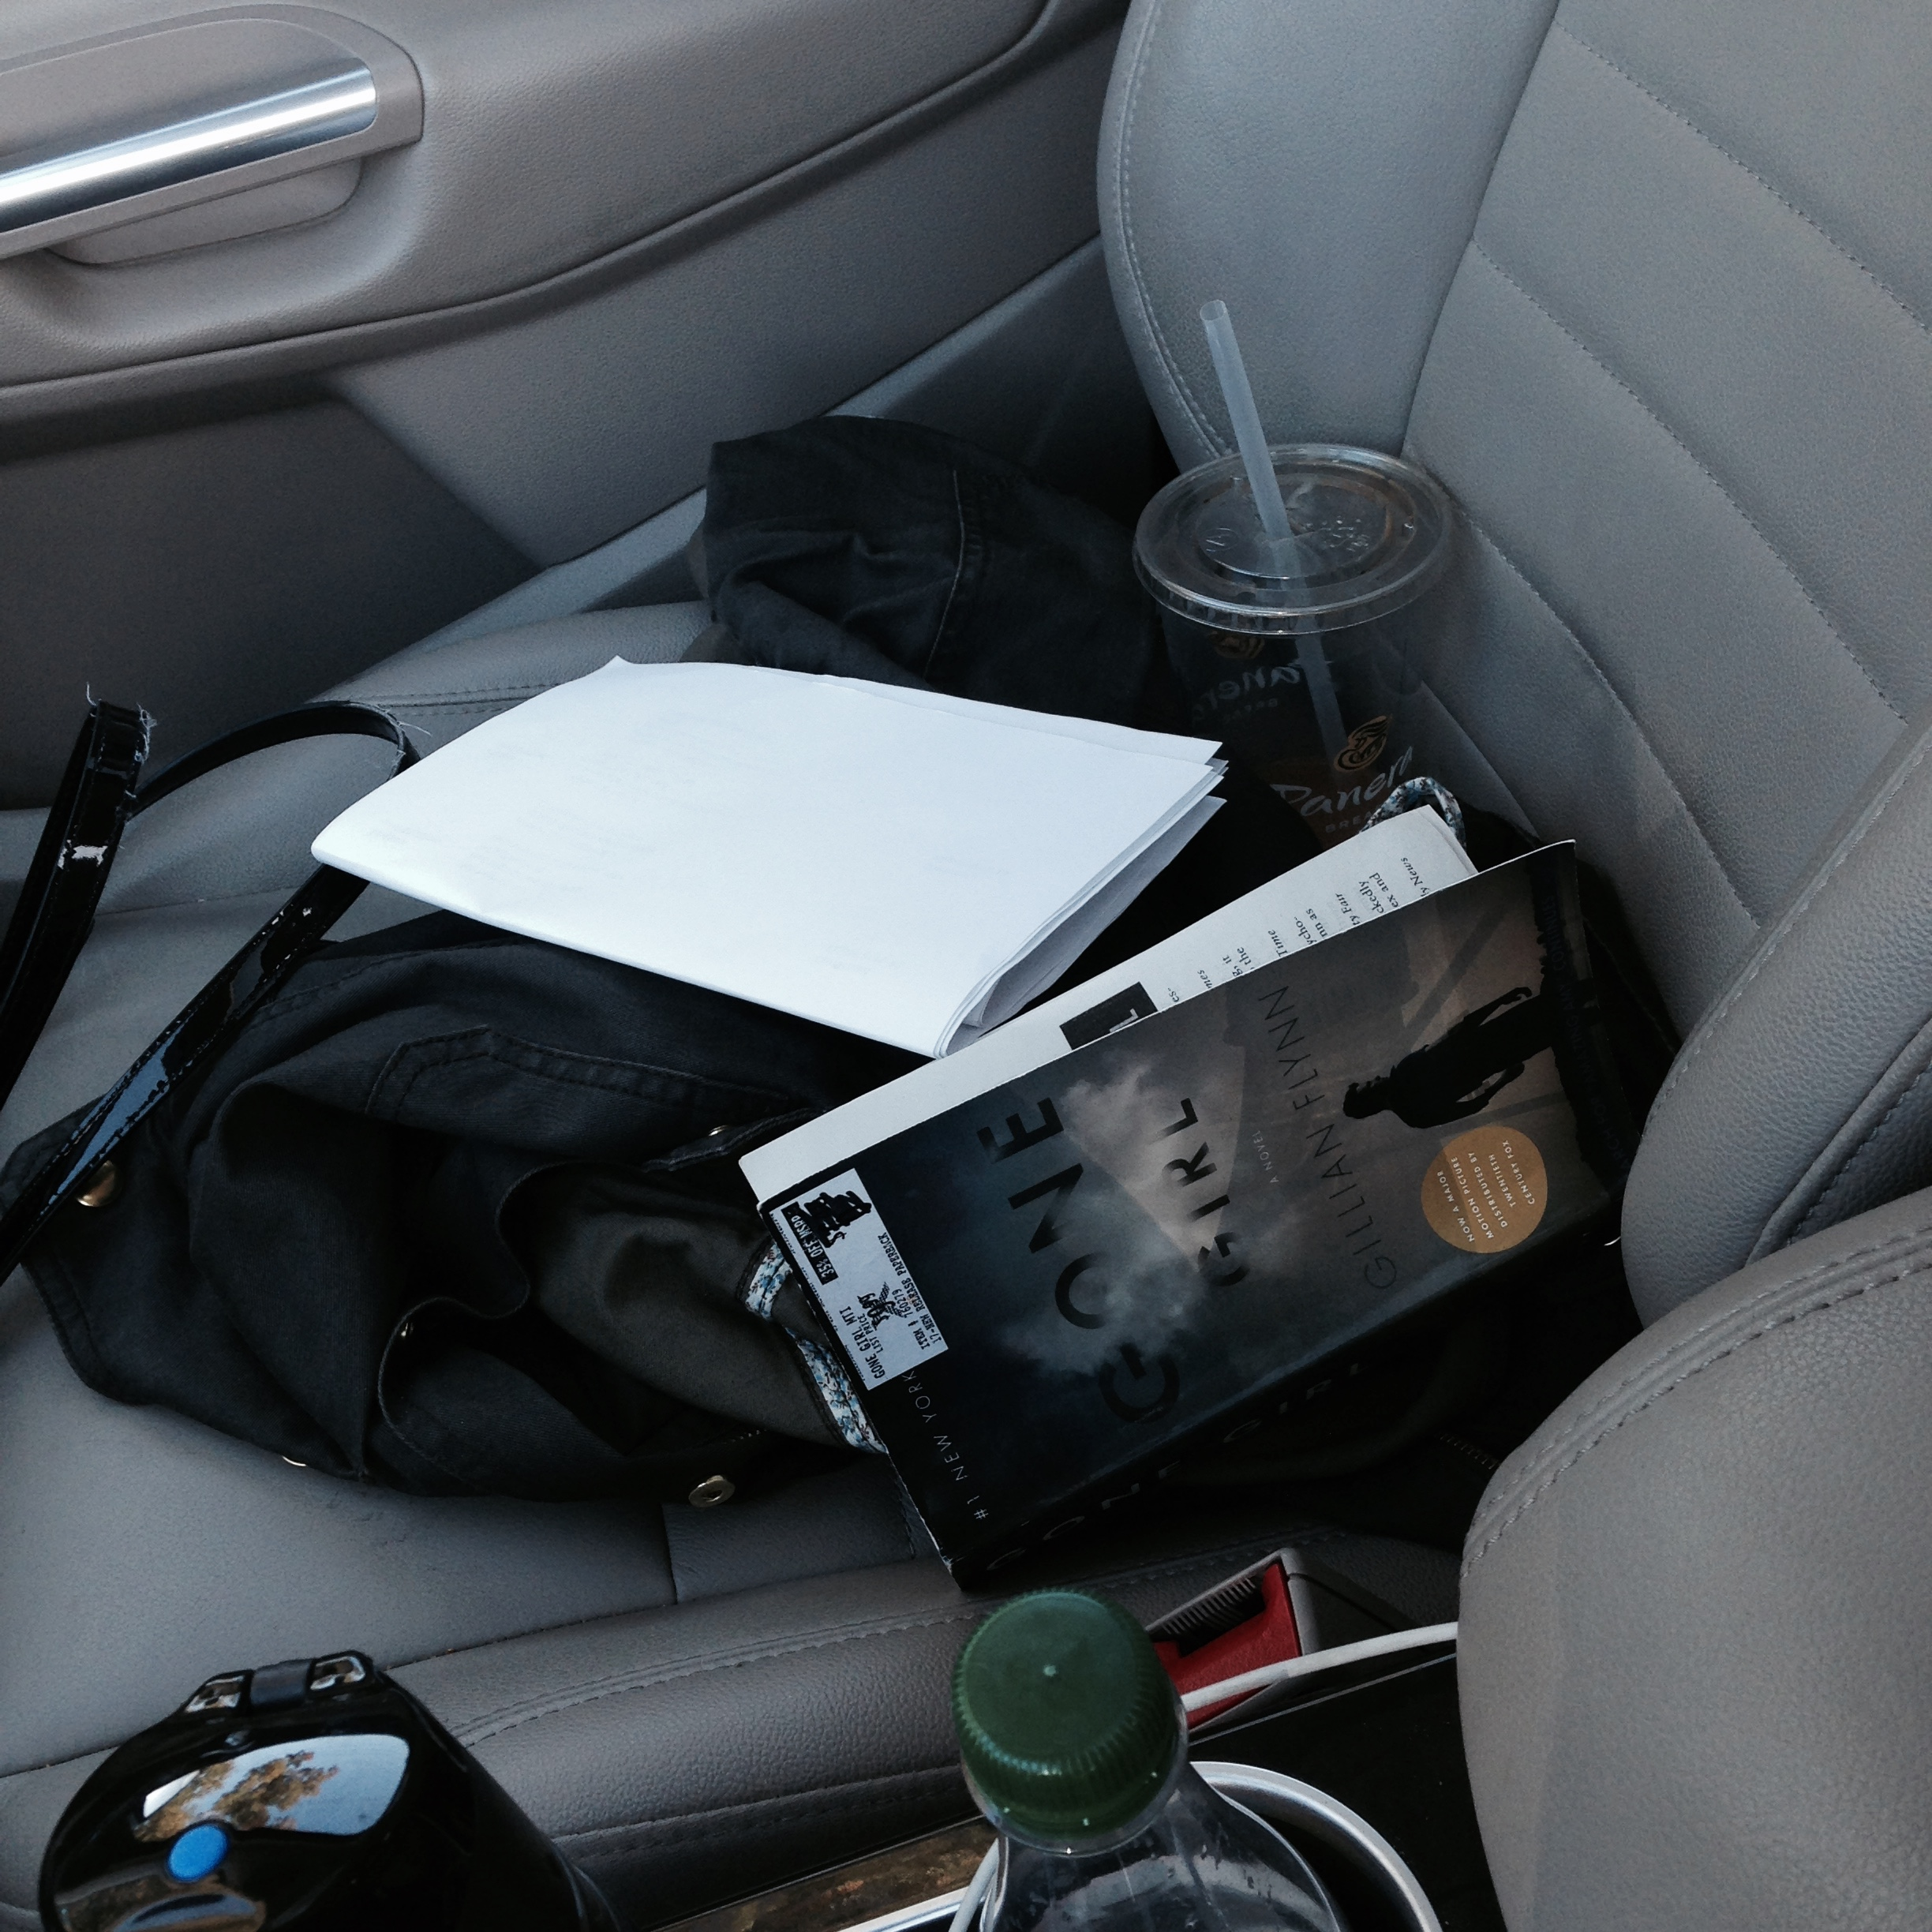 The passenger seat of my car, complete with multiple water bottles, empty iced coffee cups and my schedule for the day